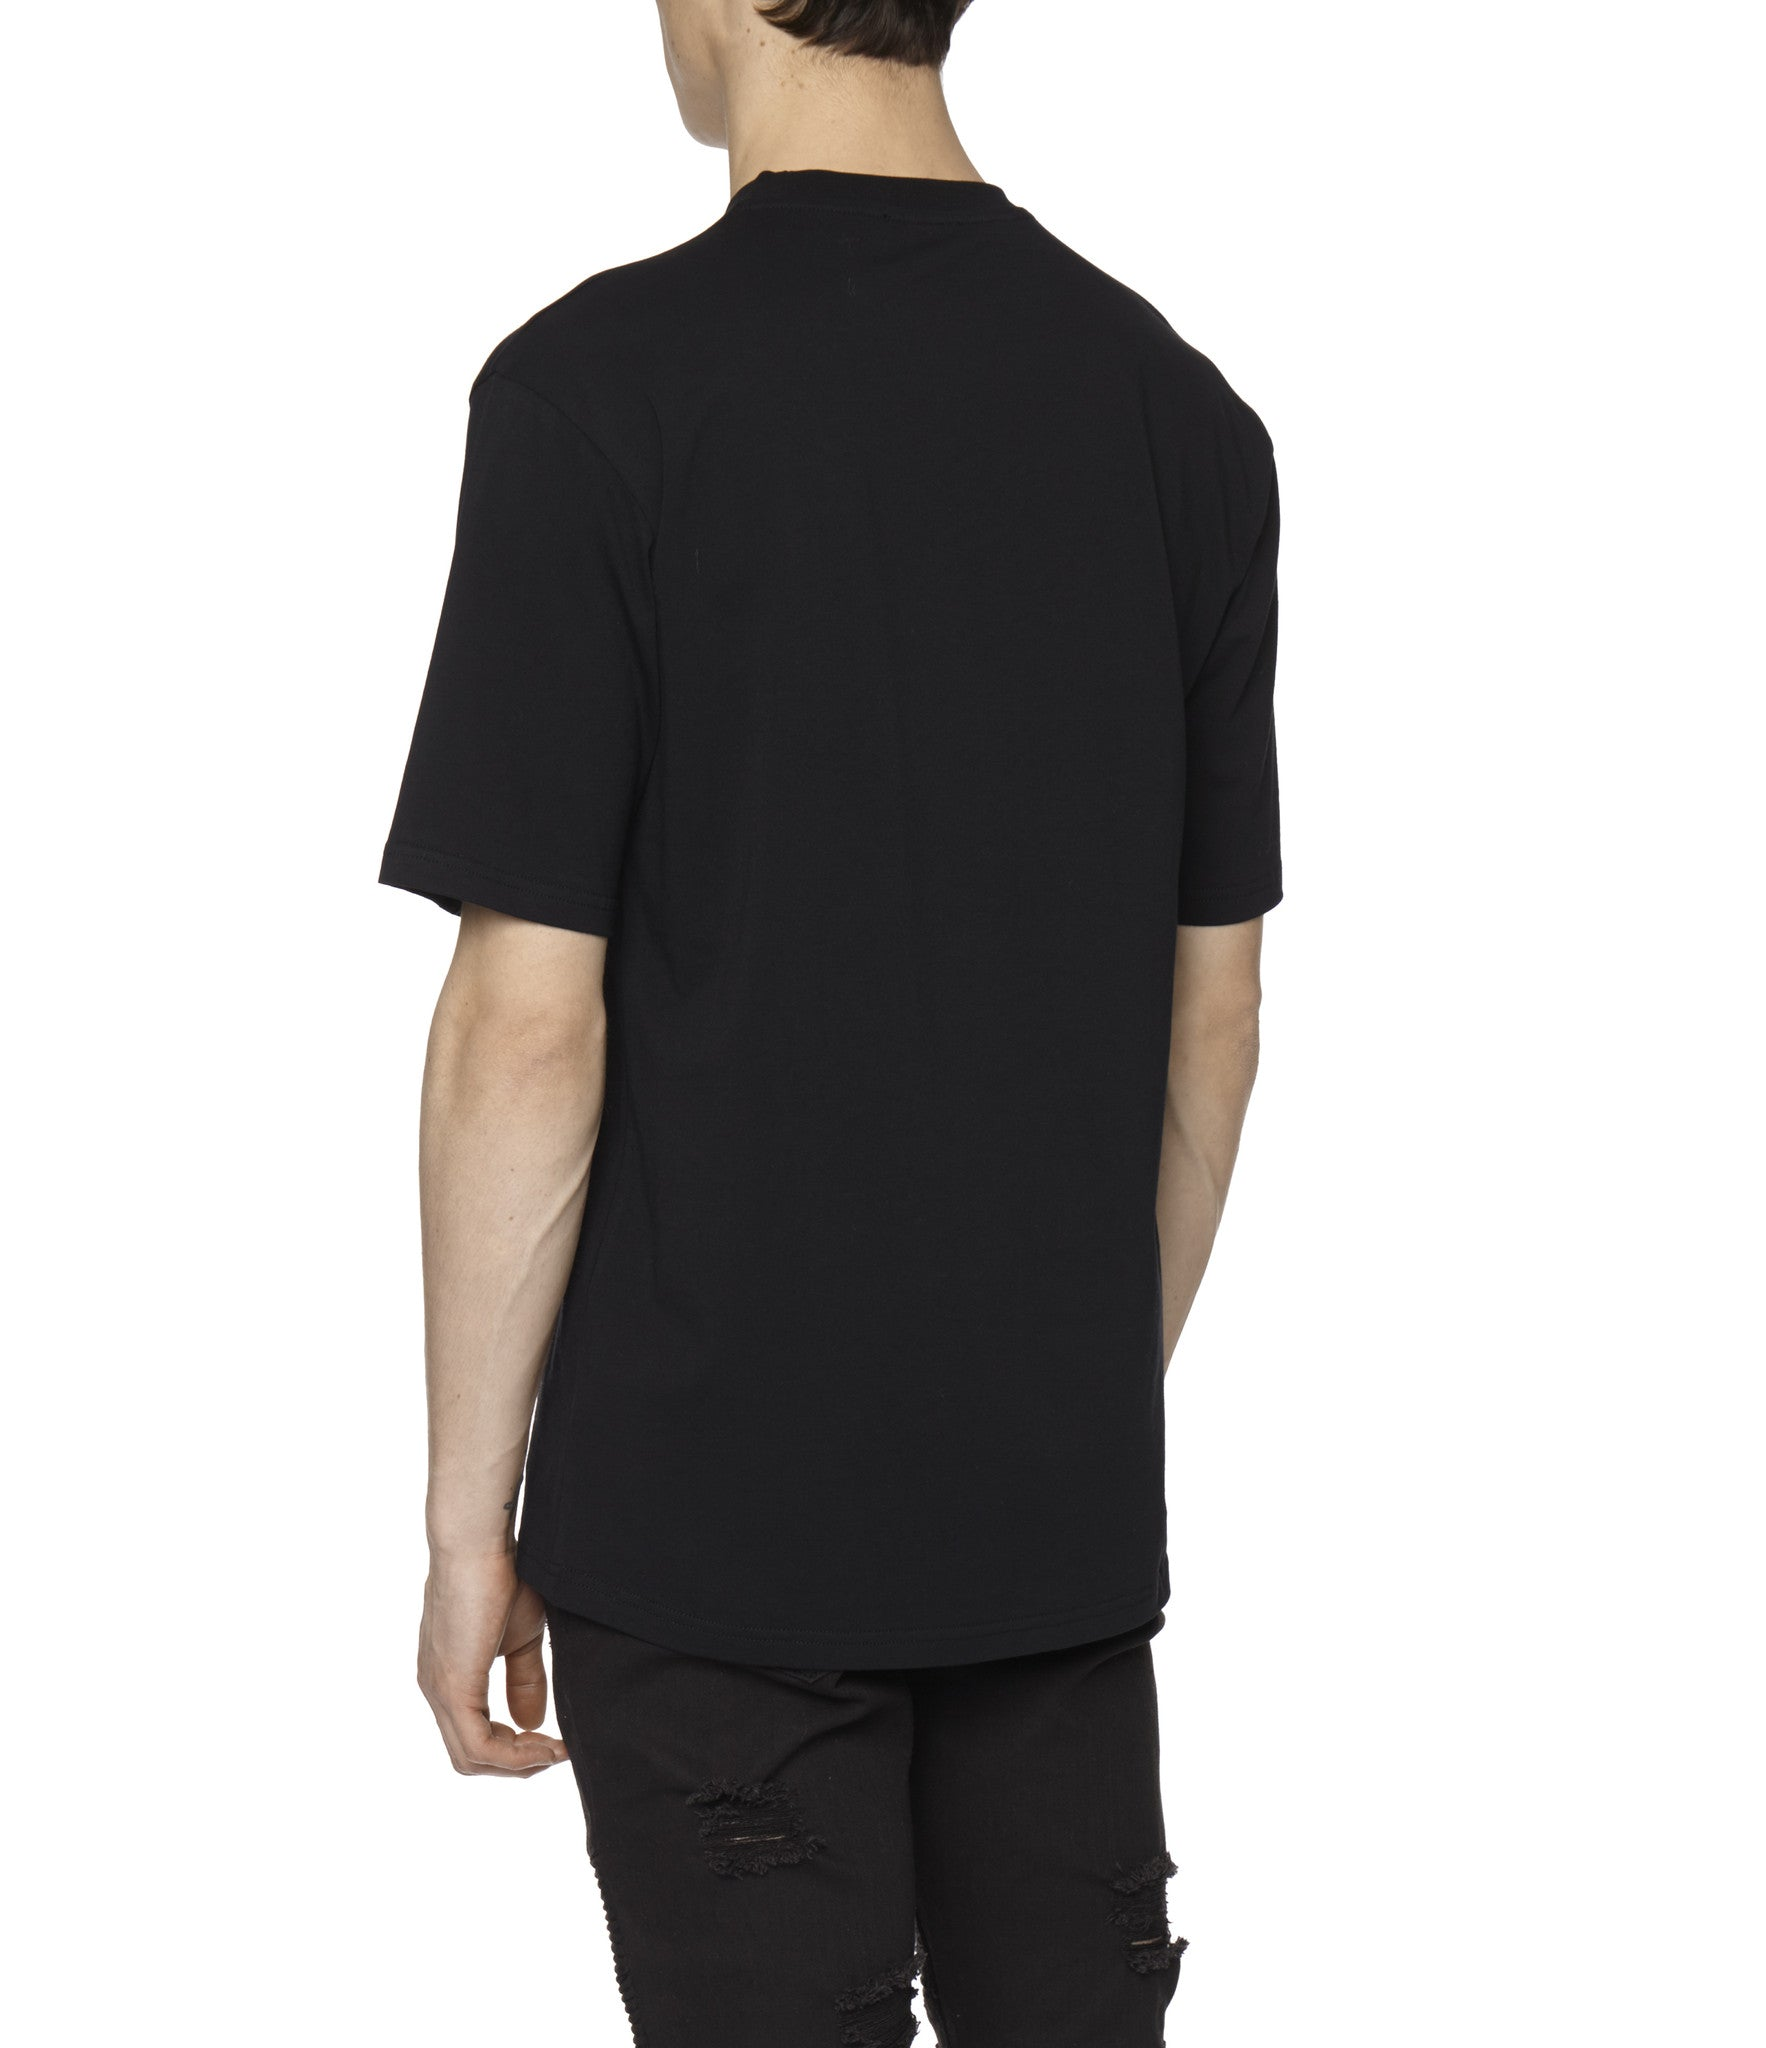 TS319 Box Logo Printed Tee - Black - underated london - underatedco - 6